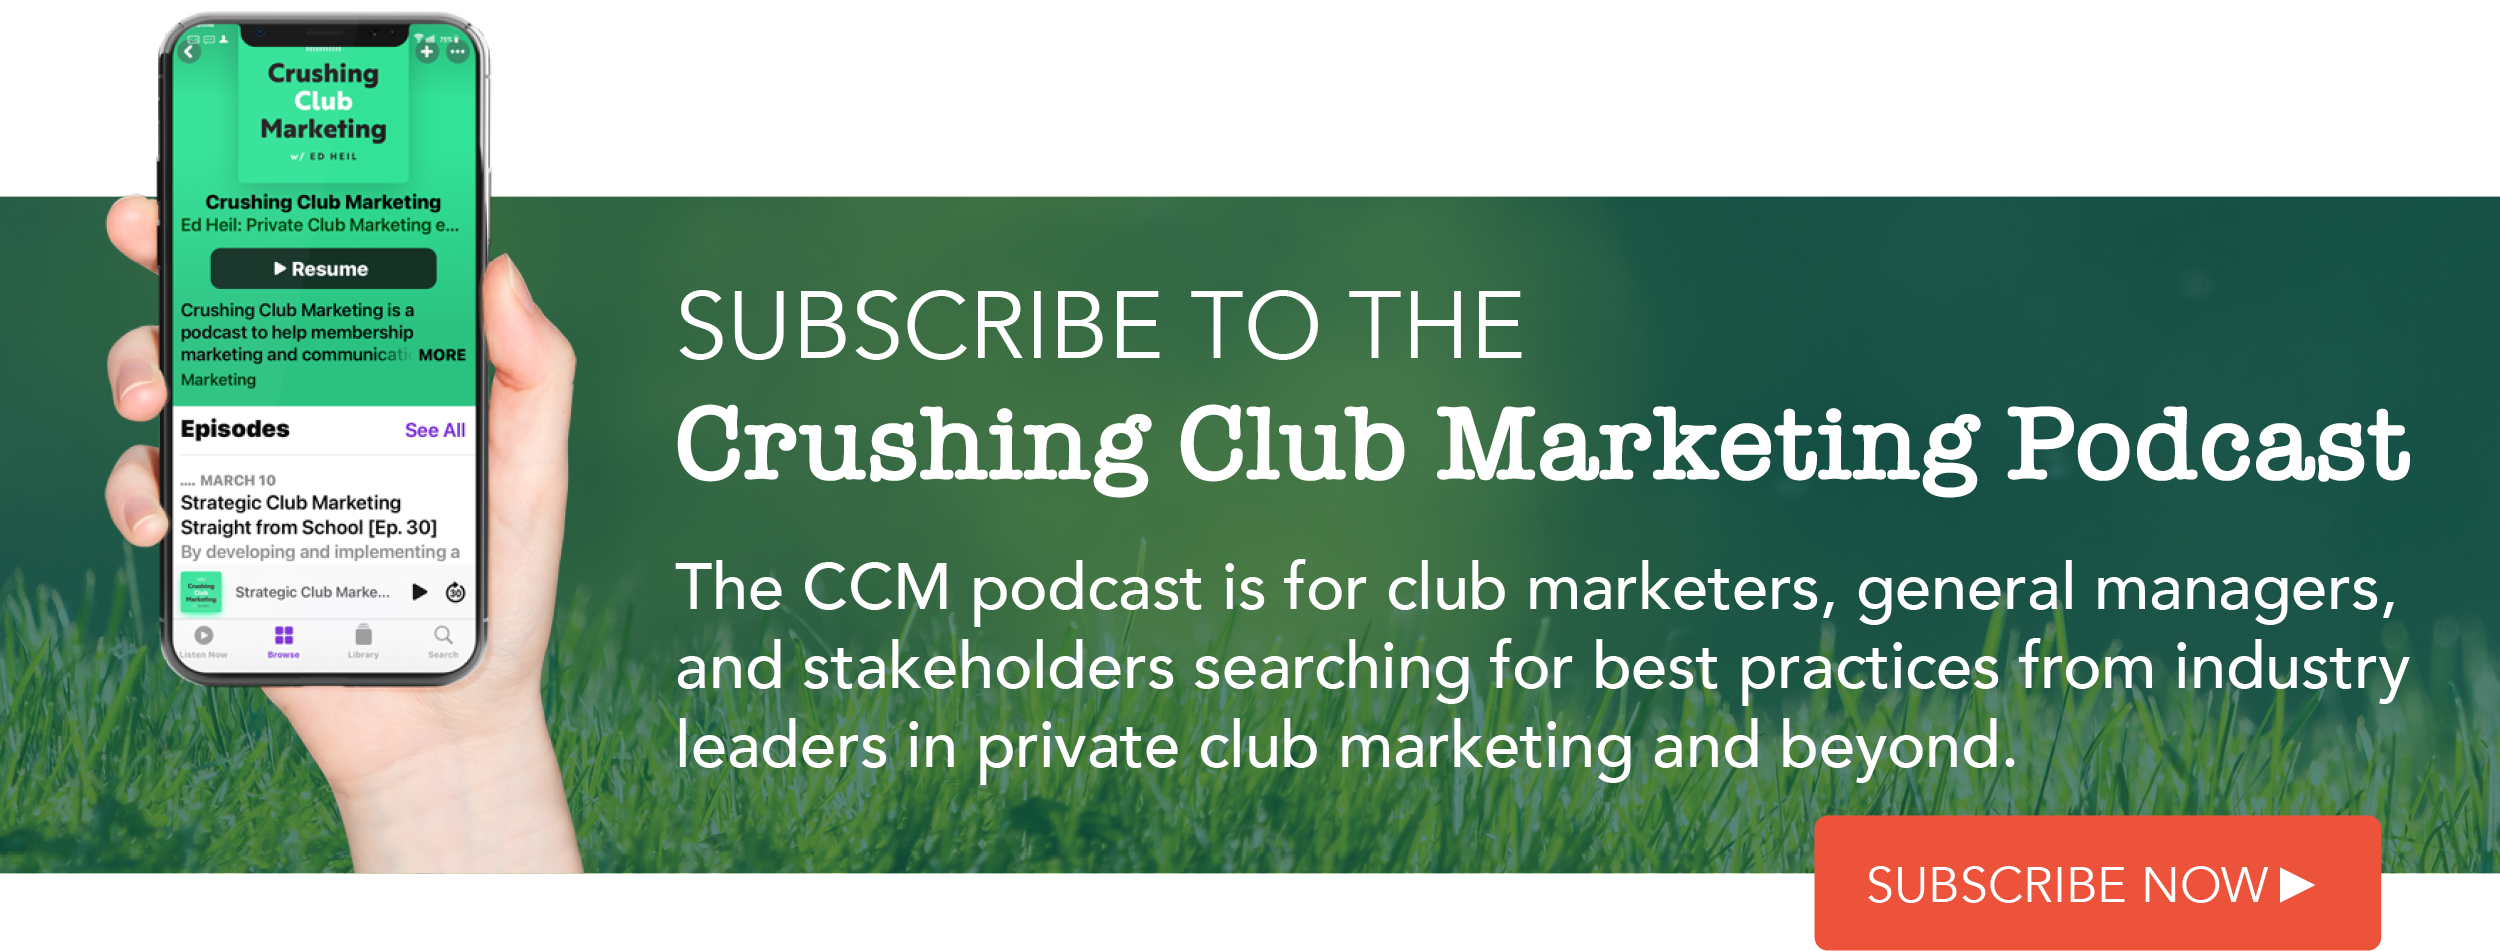 Crushing Club Marketing Podcast